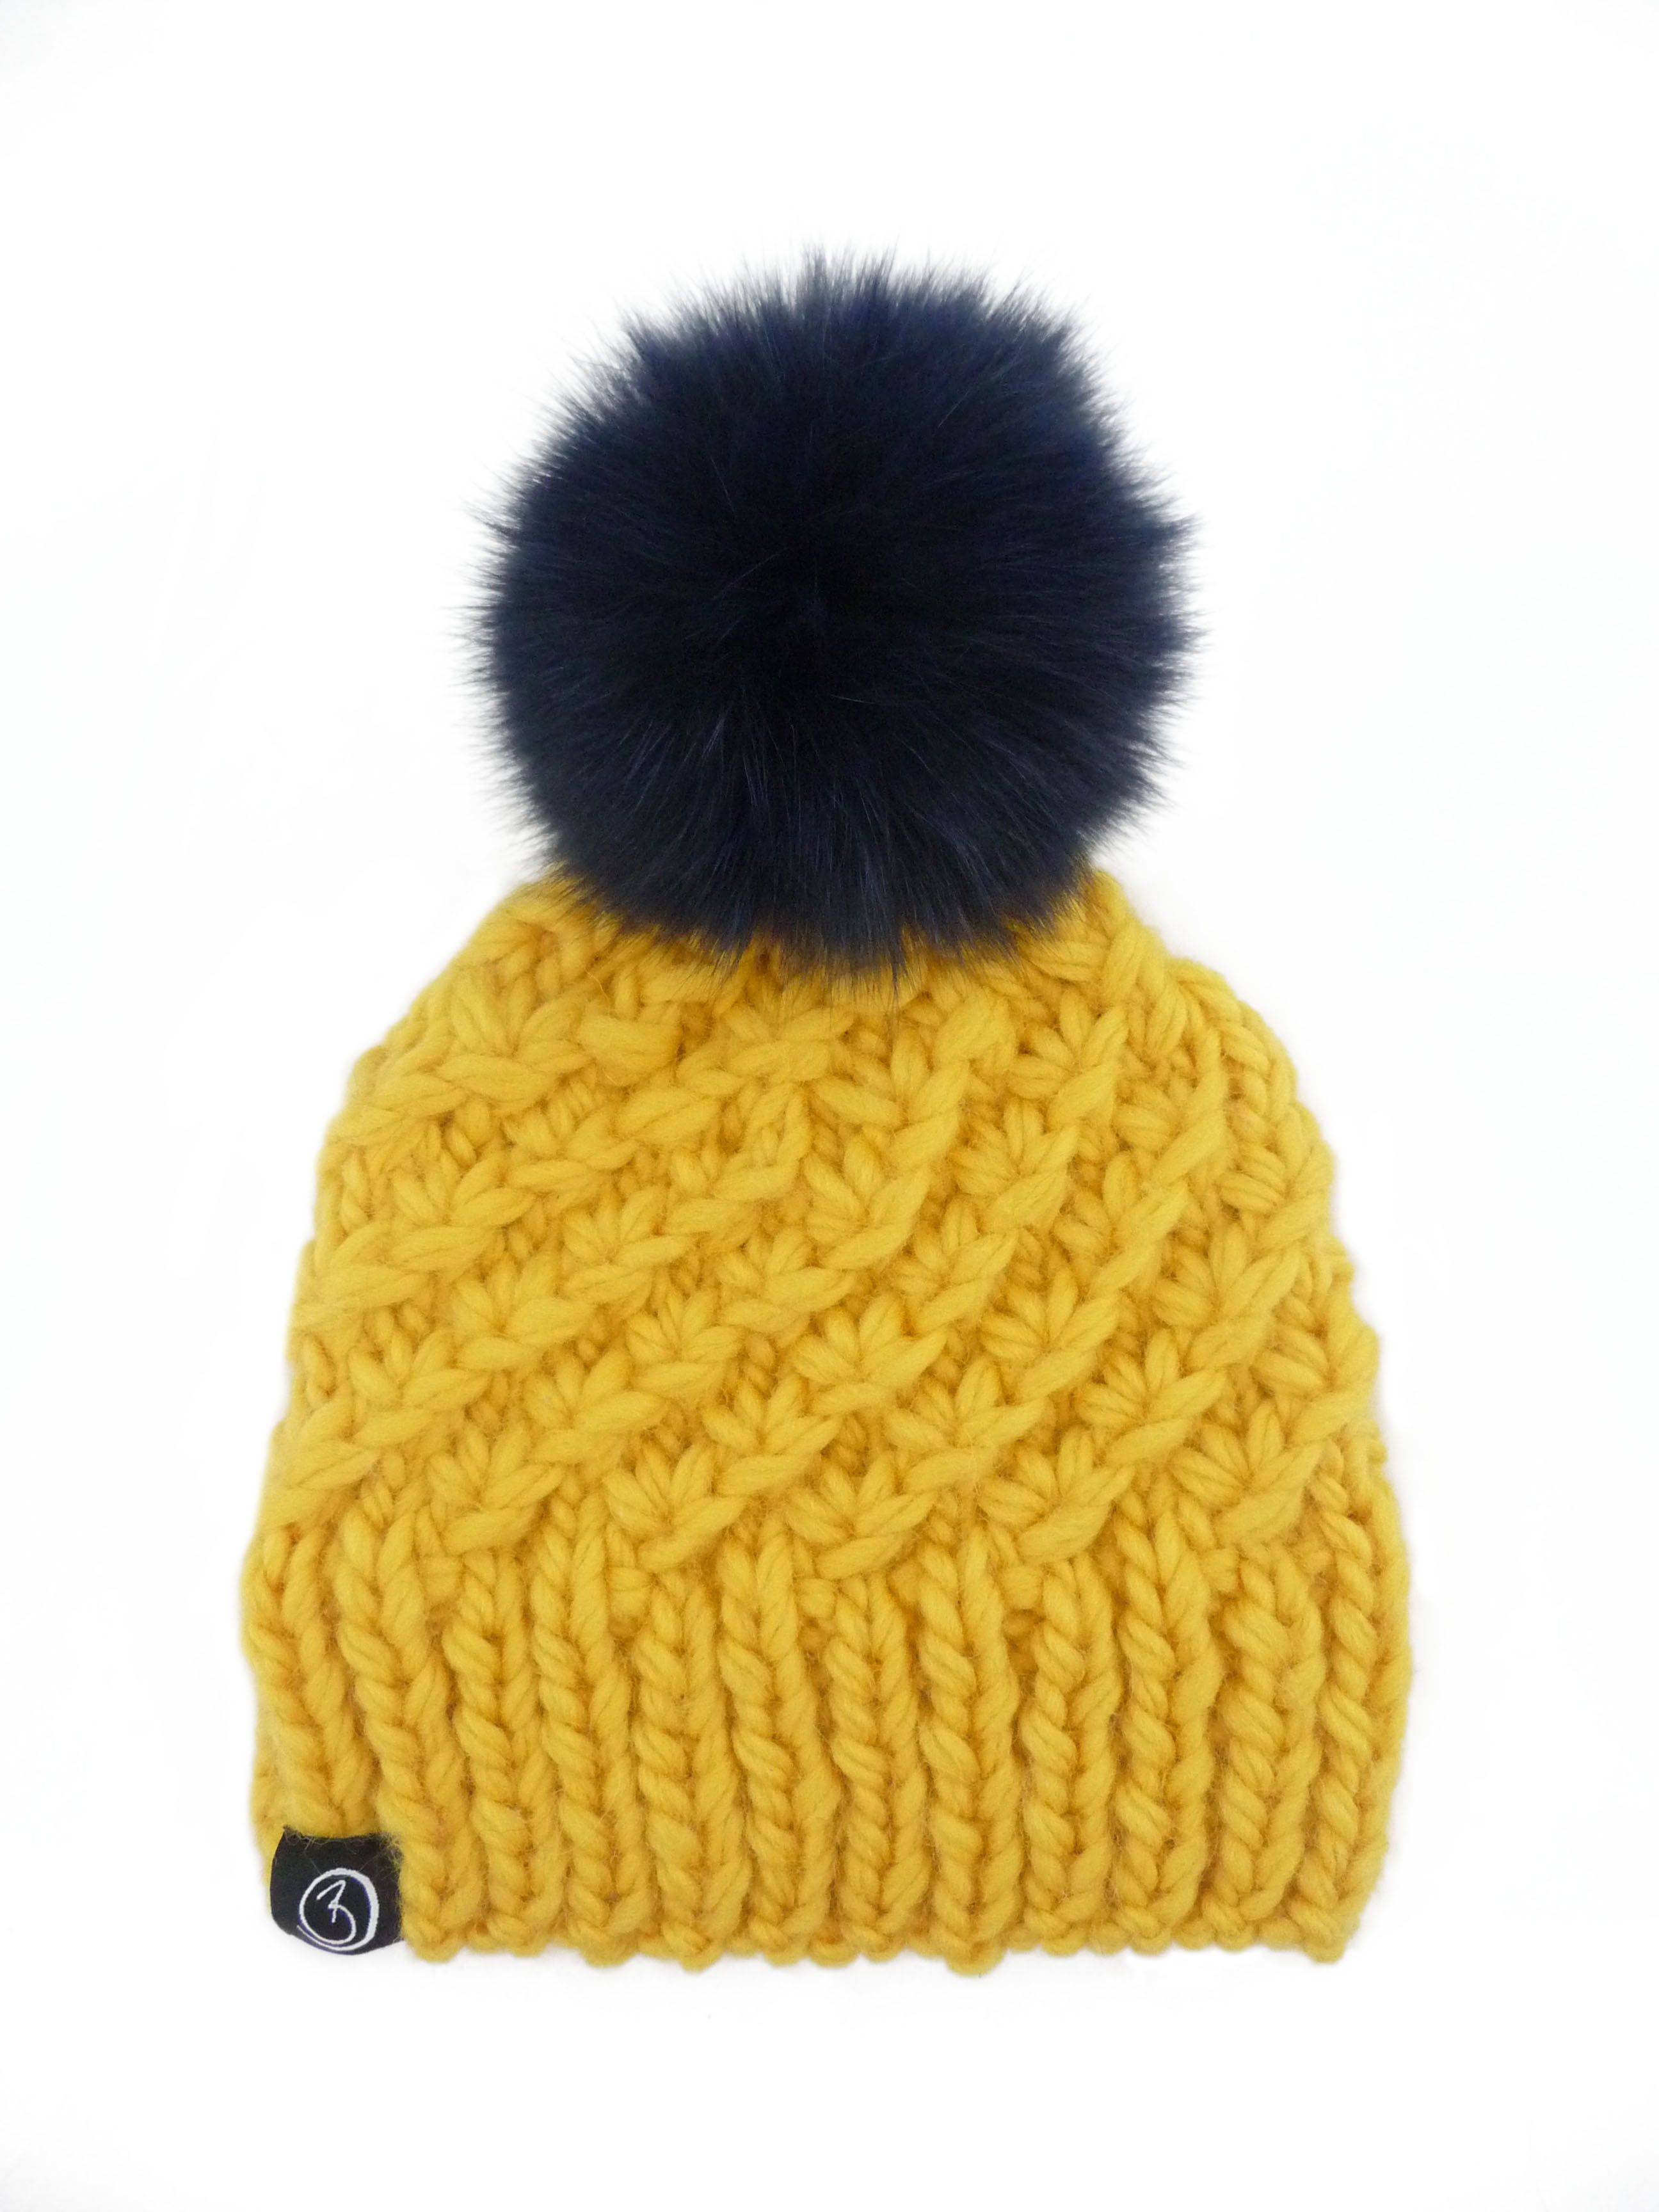 7b80c896cab Mustard chunky hand knit hat with a navy blue fox fur pom pom Bobble Hats